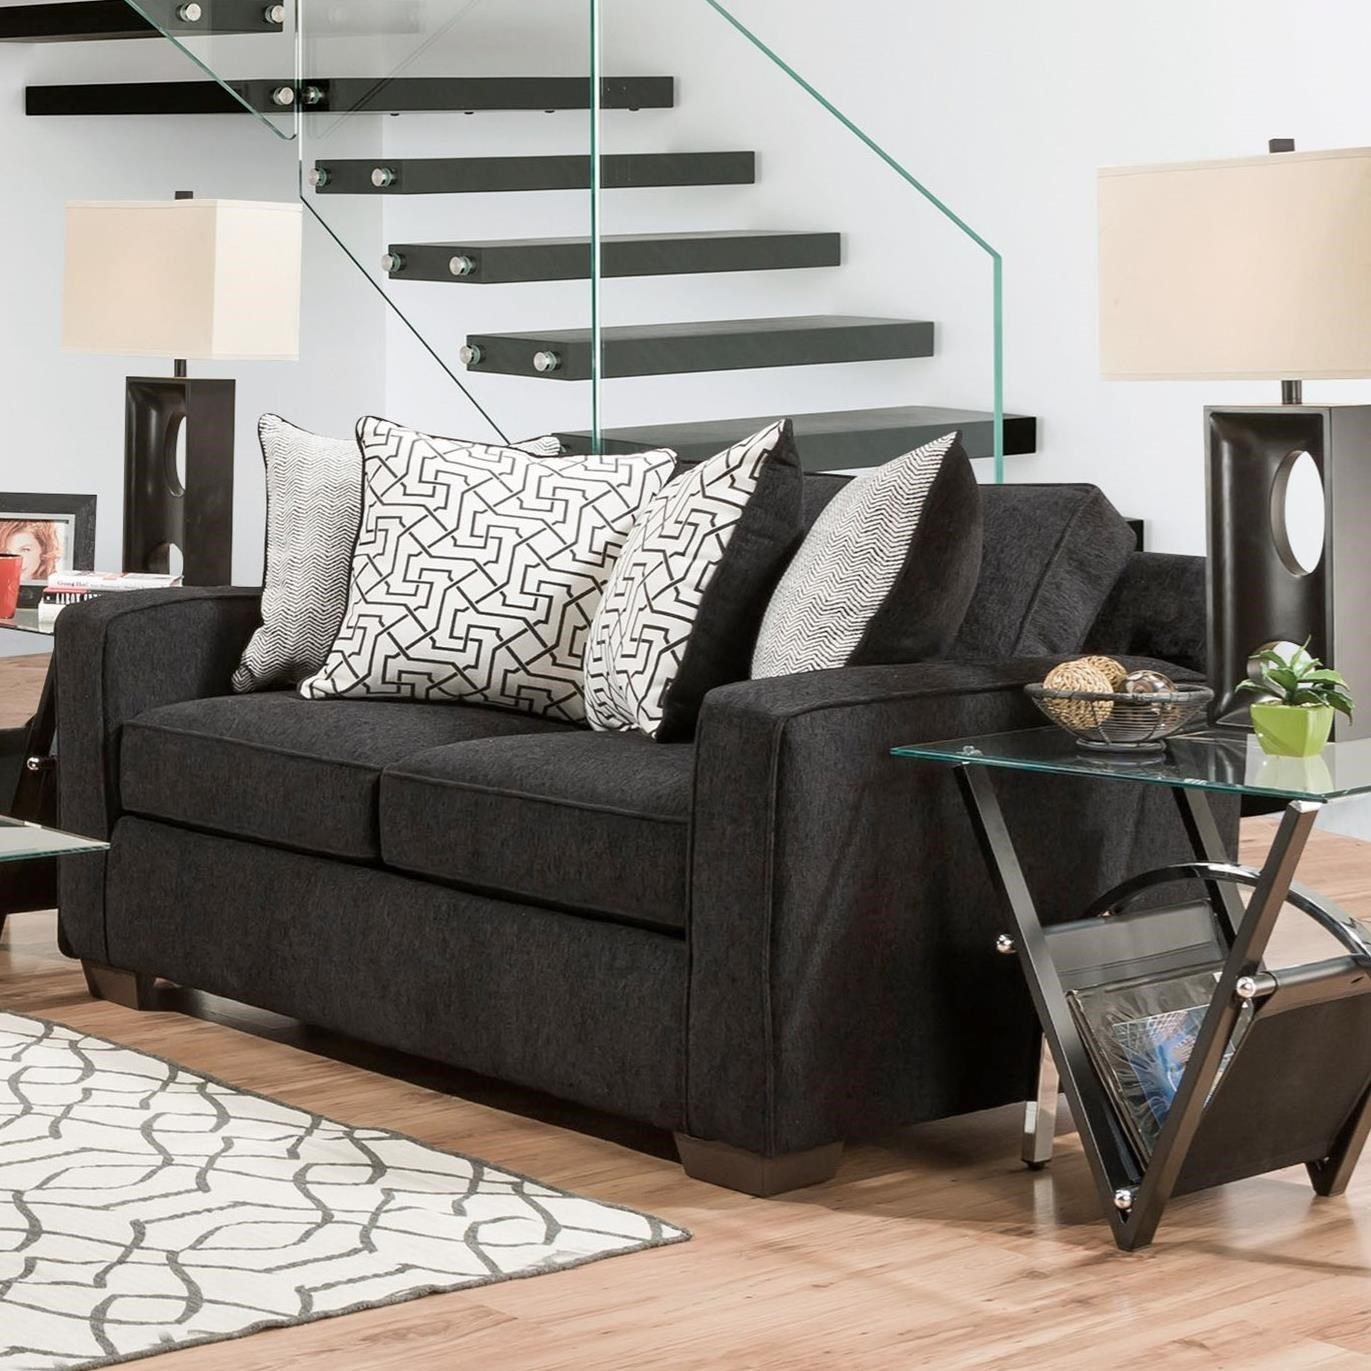 4050 Loveseat by Peak Living at Prime Brothers Furniture